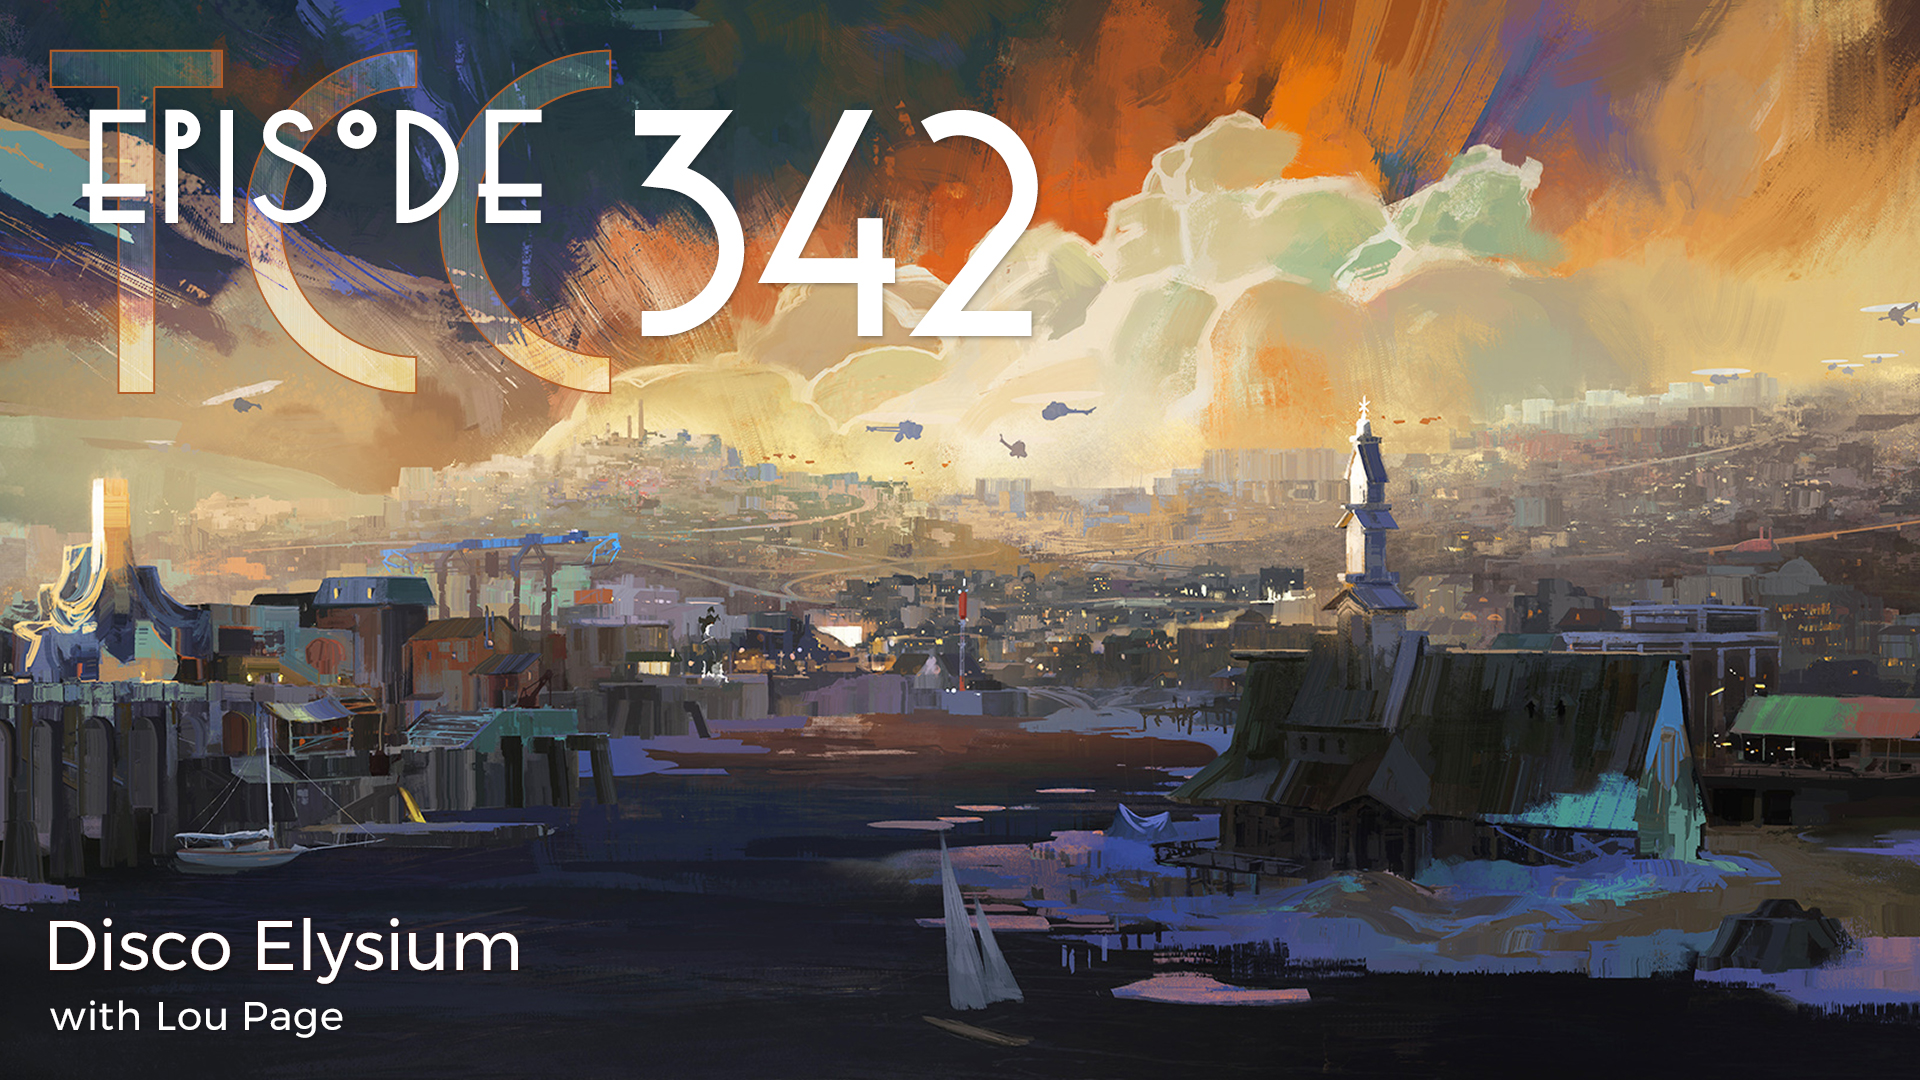 The Citadel Cafe 342: Disco Elysium